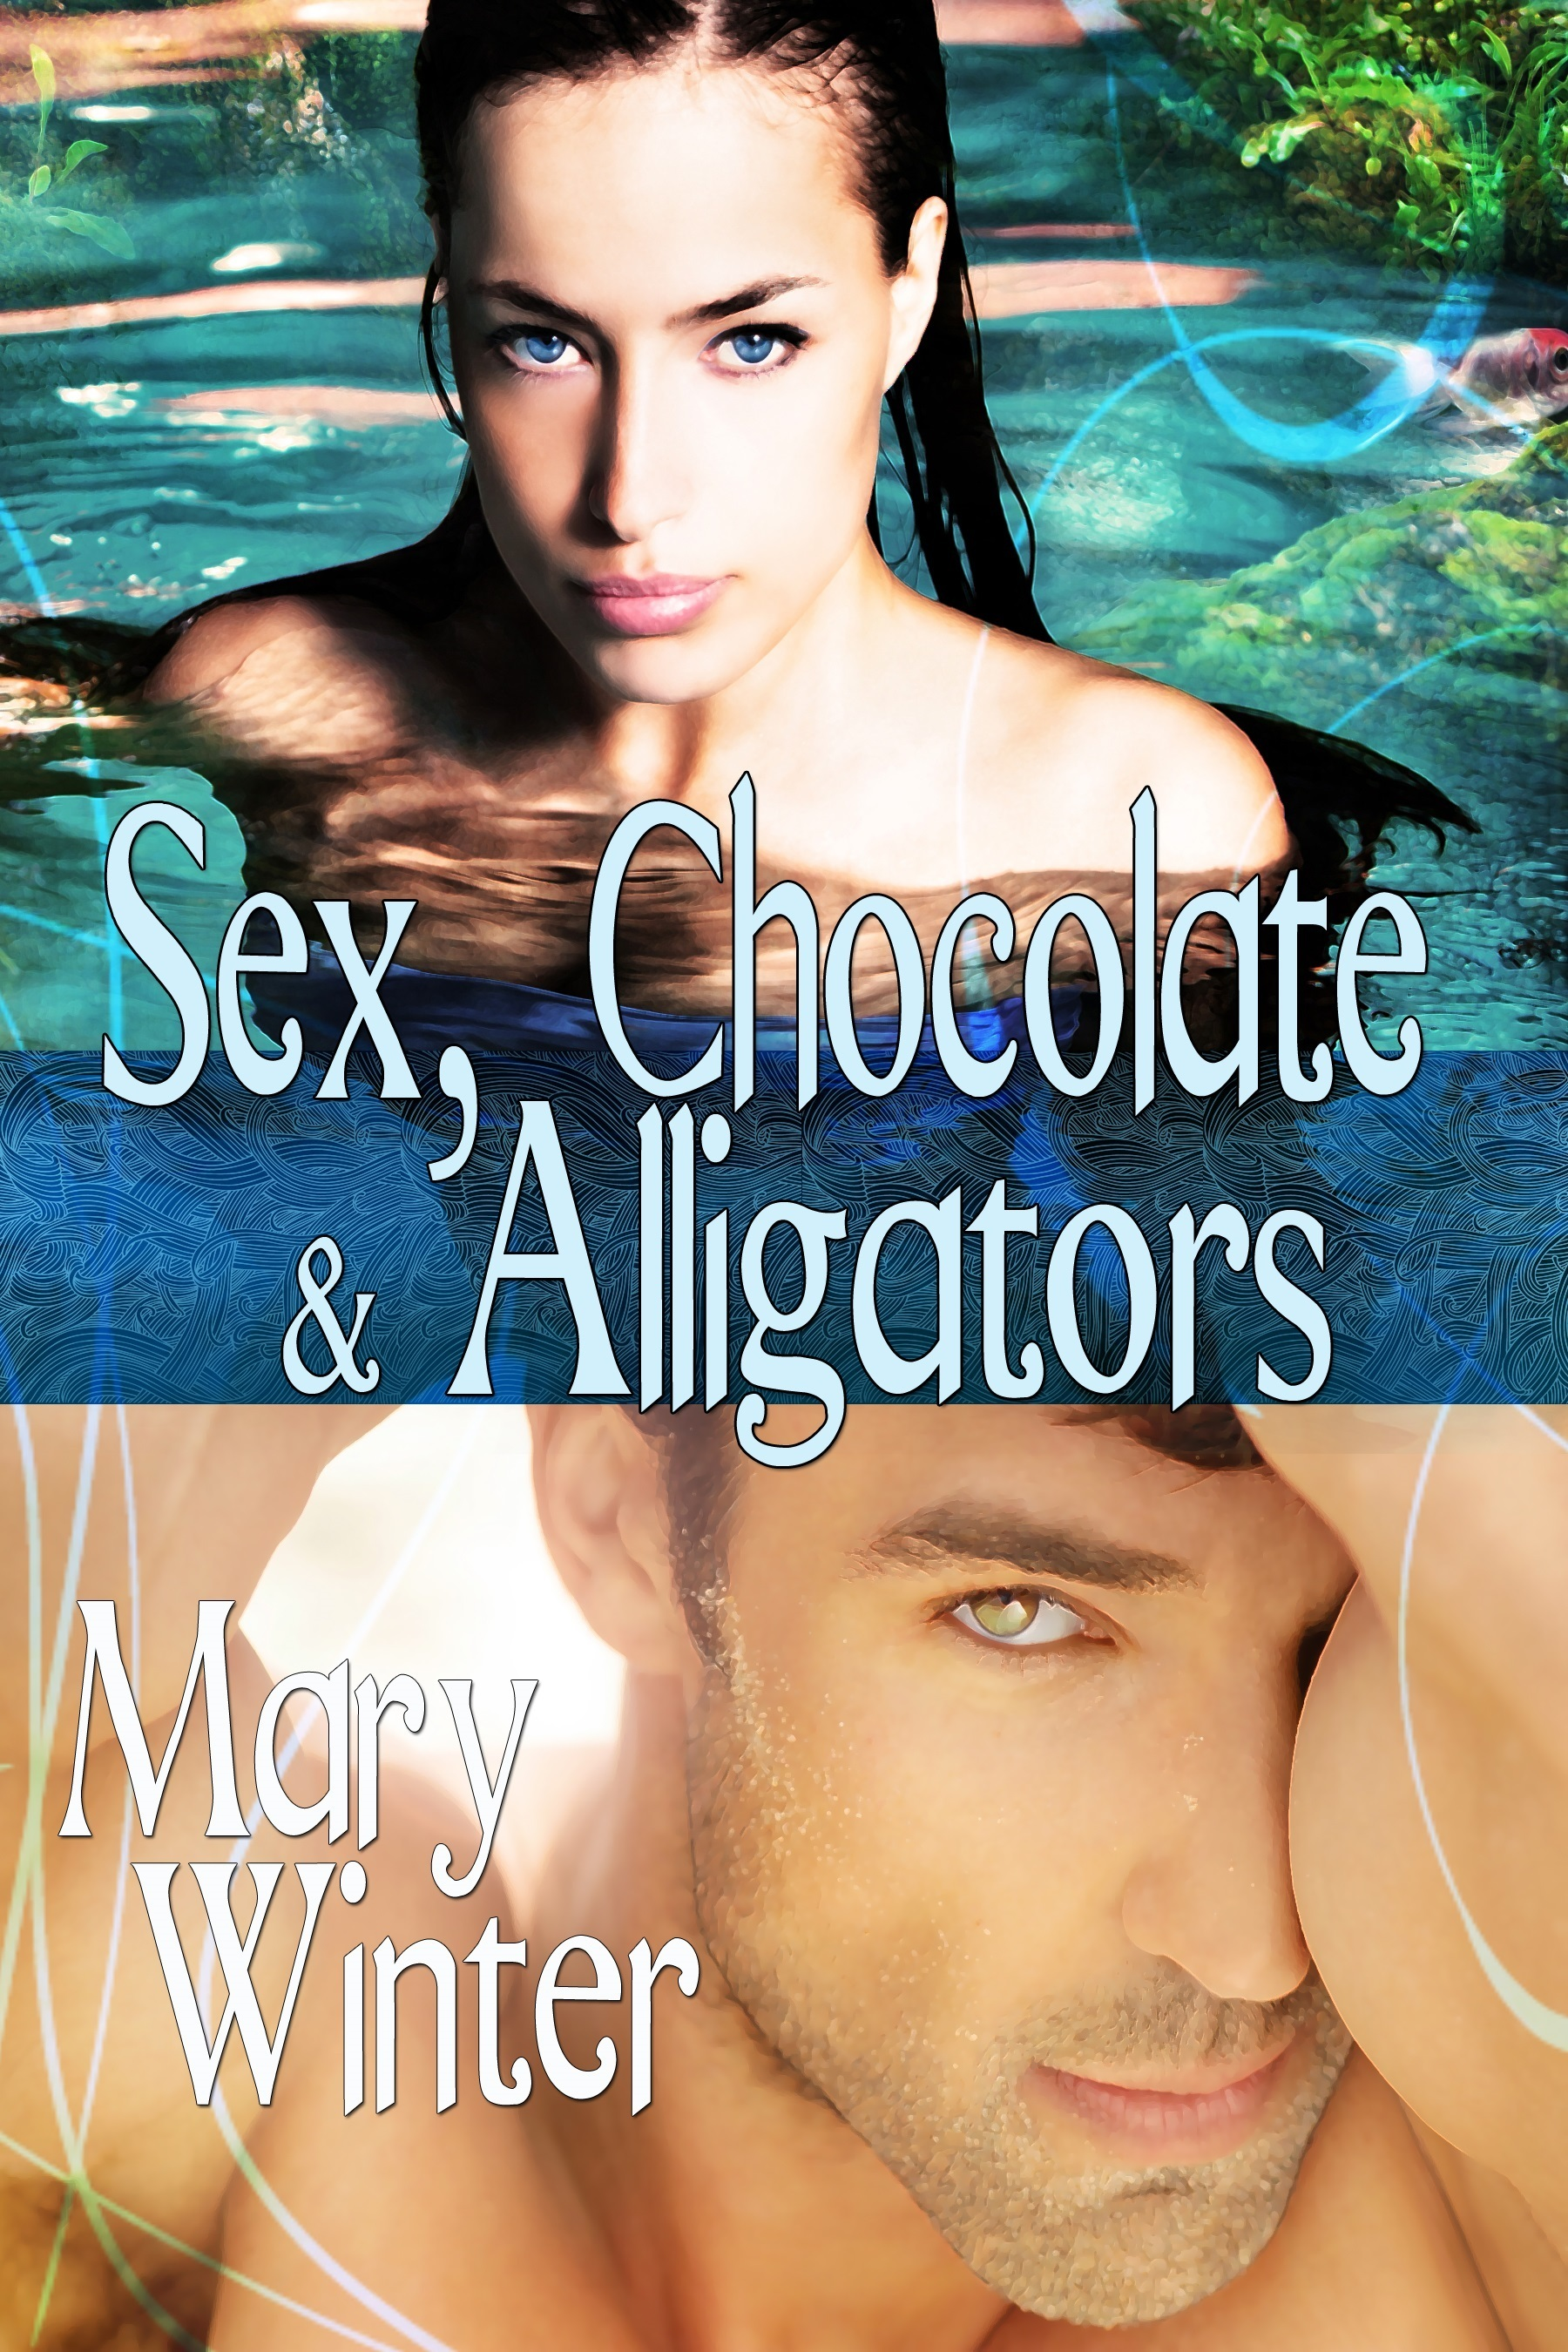 Sex, Chocolate, and Alligators Mary Winter